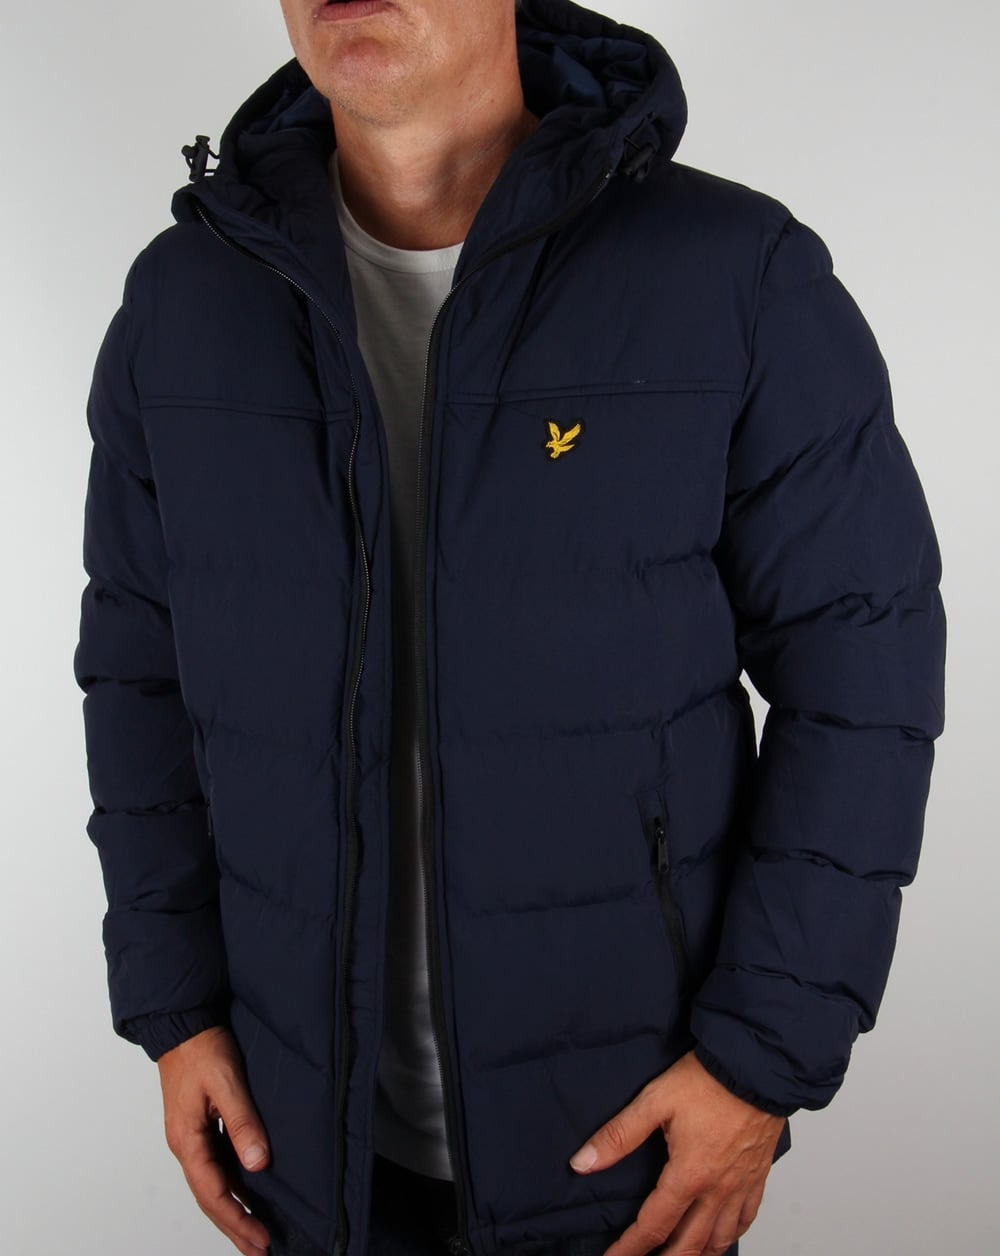 lyle and scott wadded jacket navy coat parka mens puffa padded winter. Black Bedroom Furniture Sets. Home Design Ideas